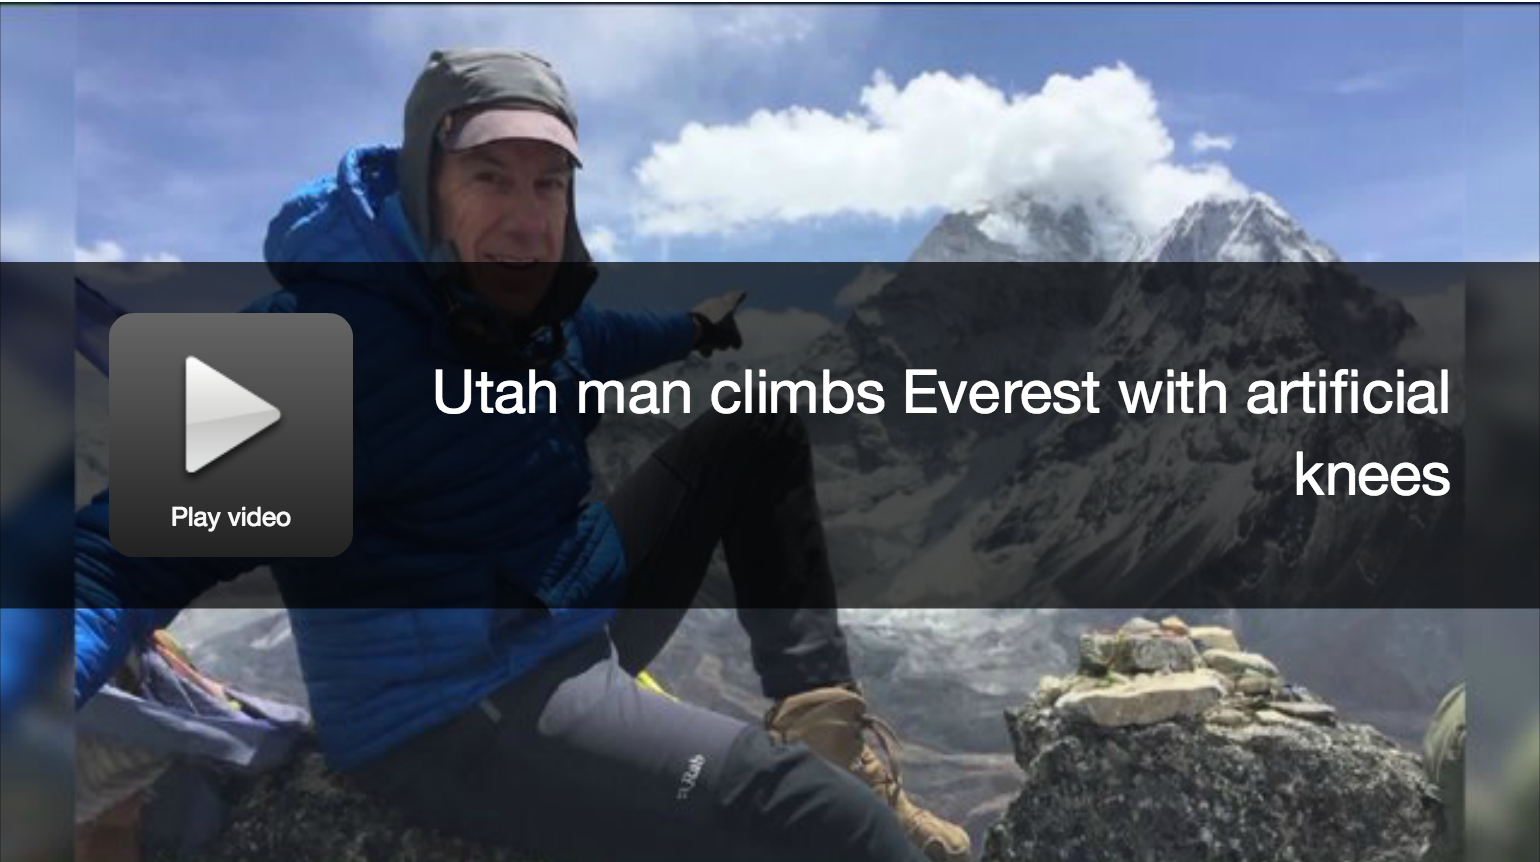 Via Fox13 News: Utahn believed to be first to summit Everest with artificial knees Image